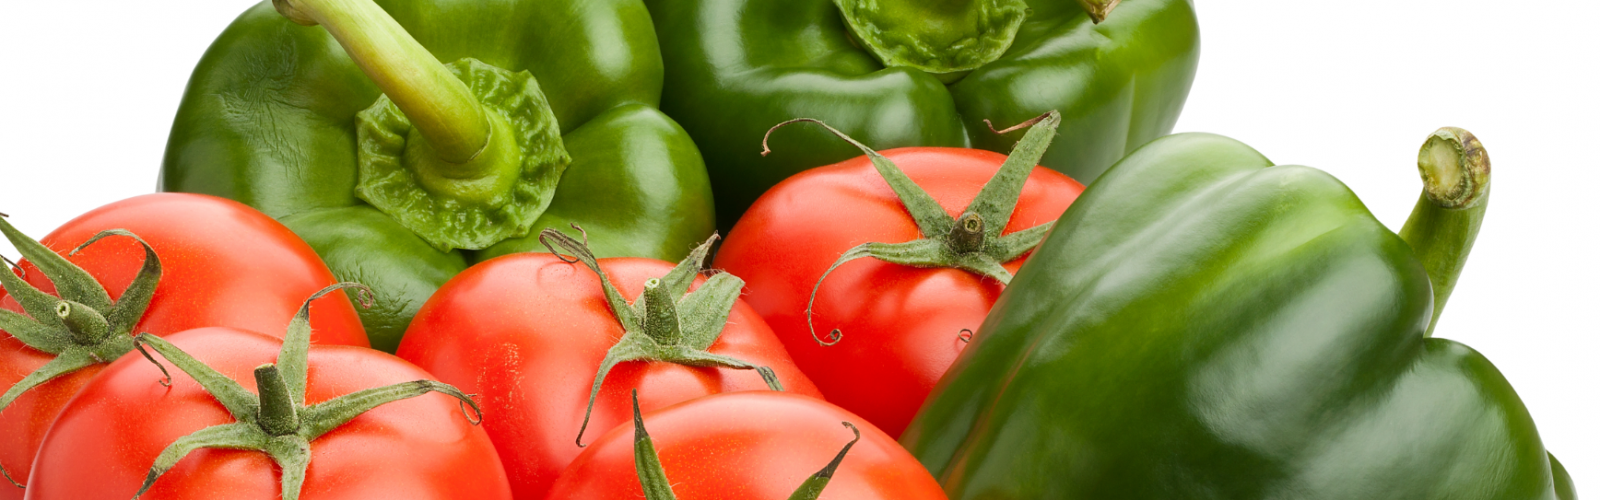 green bell peppers and tomatoes